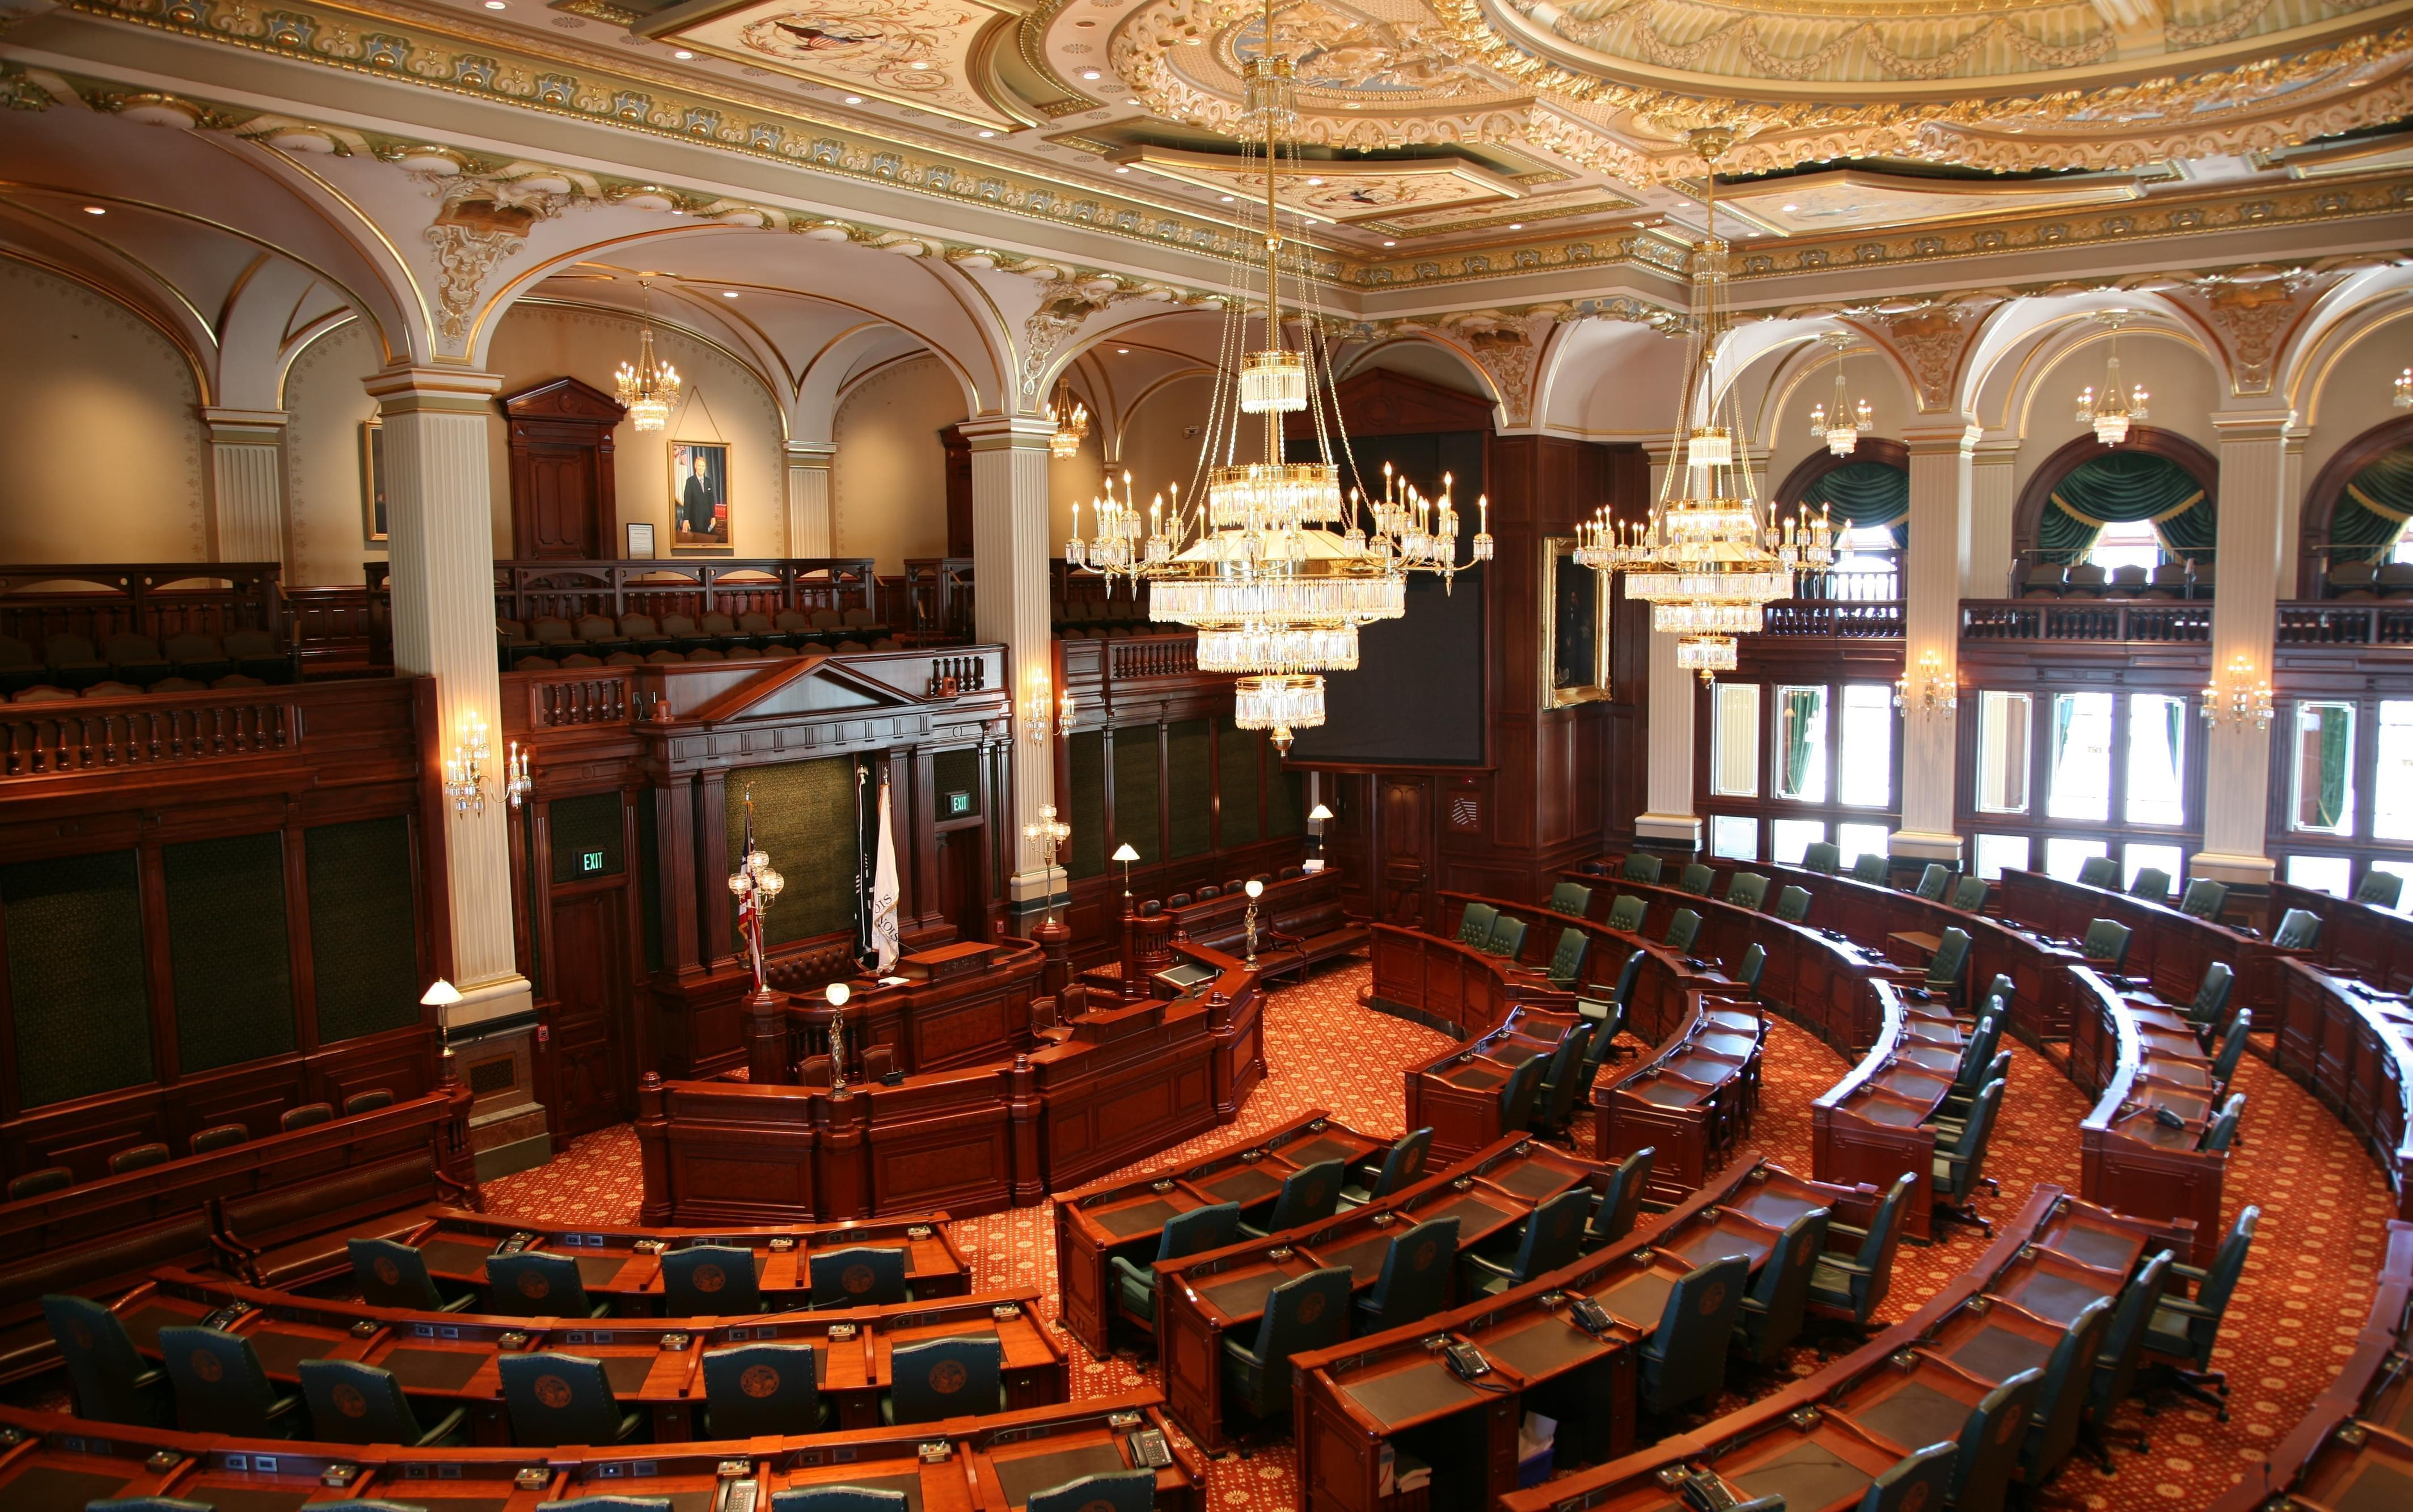 The Illinois House chamber.